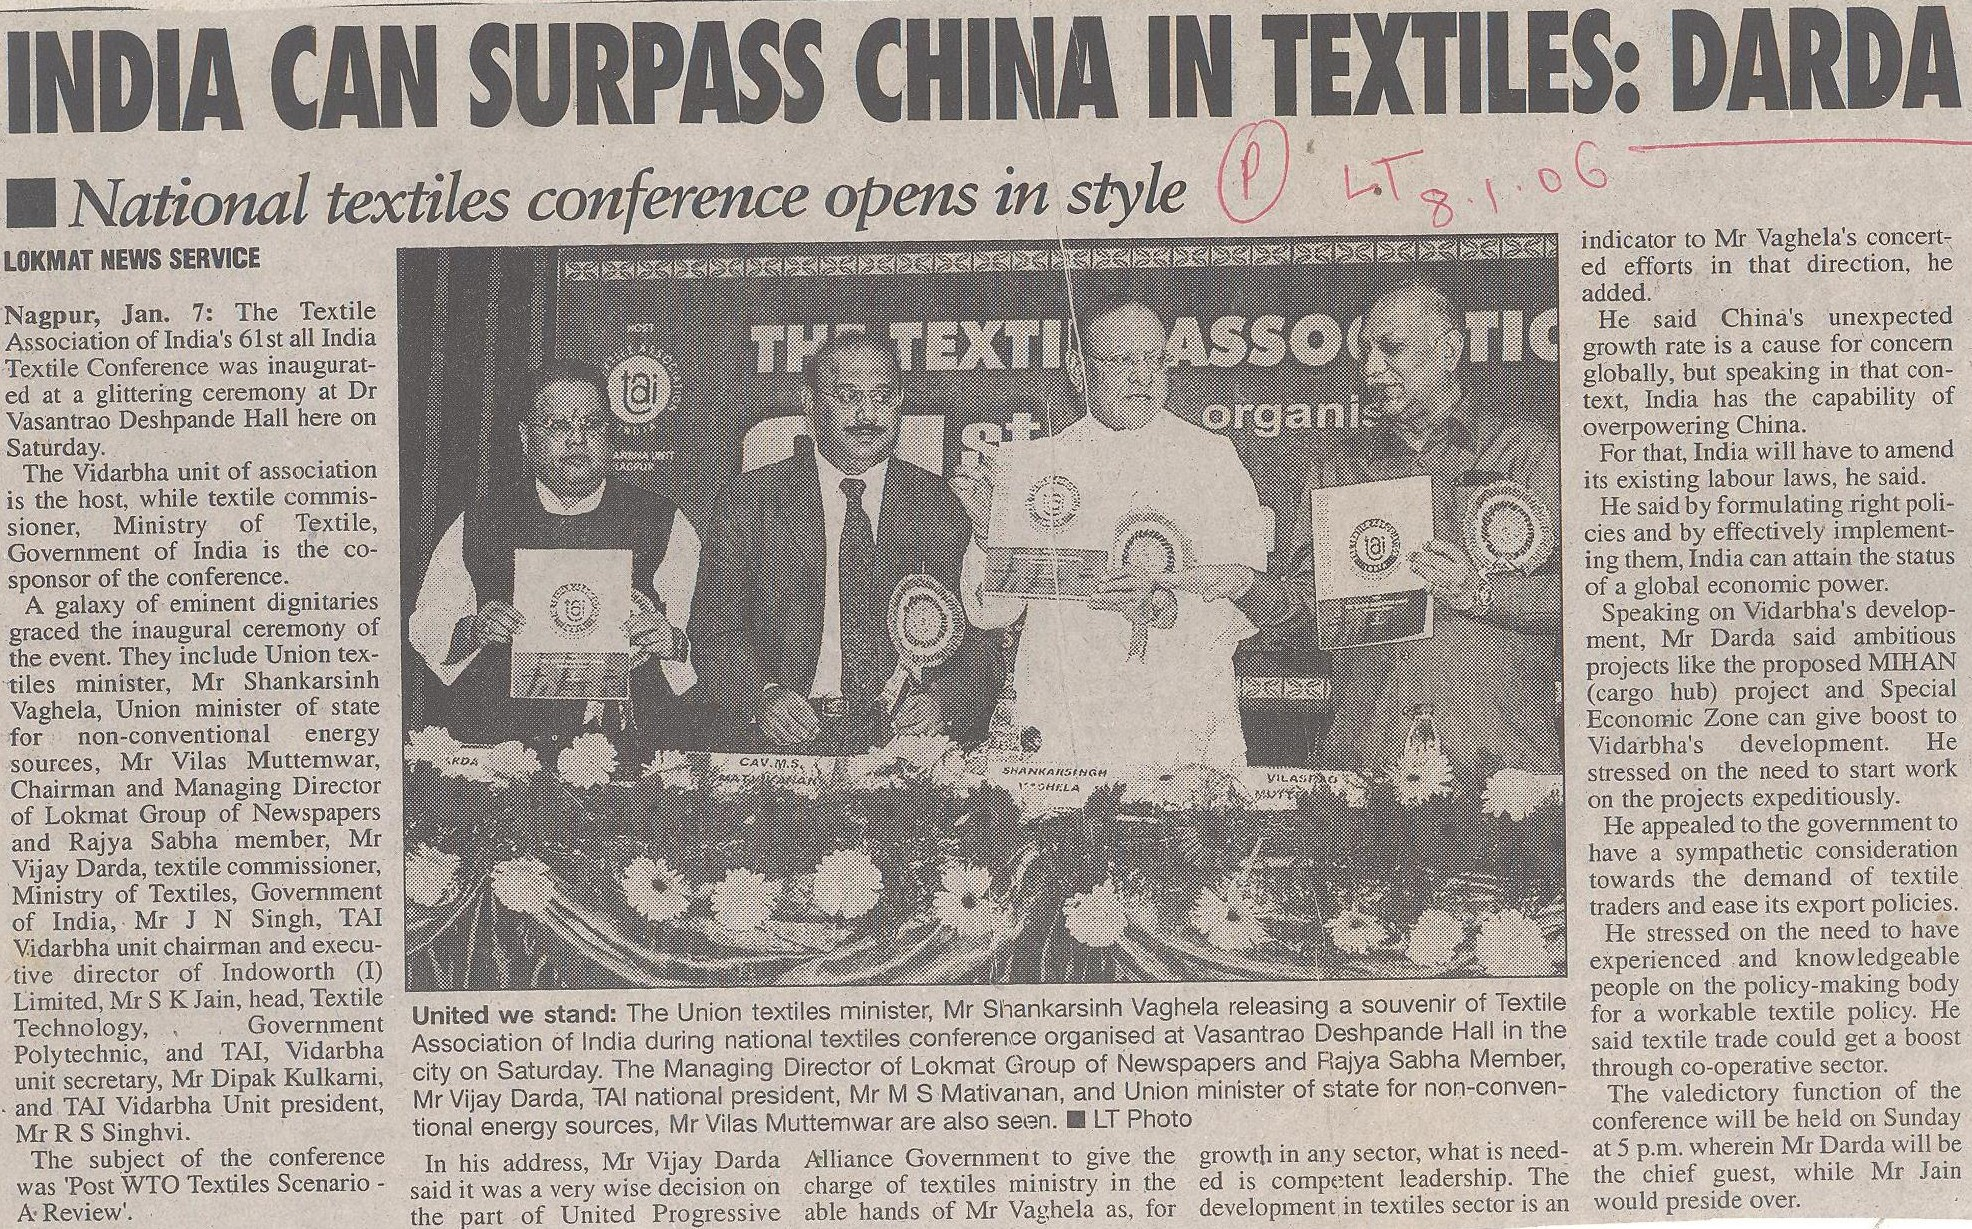 INDIA CAN SURPASS CHINA IN TEXTILES: DARDA